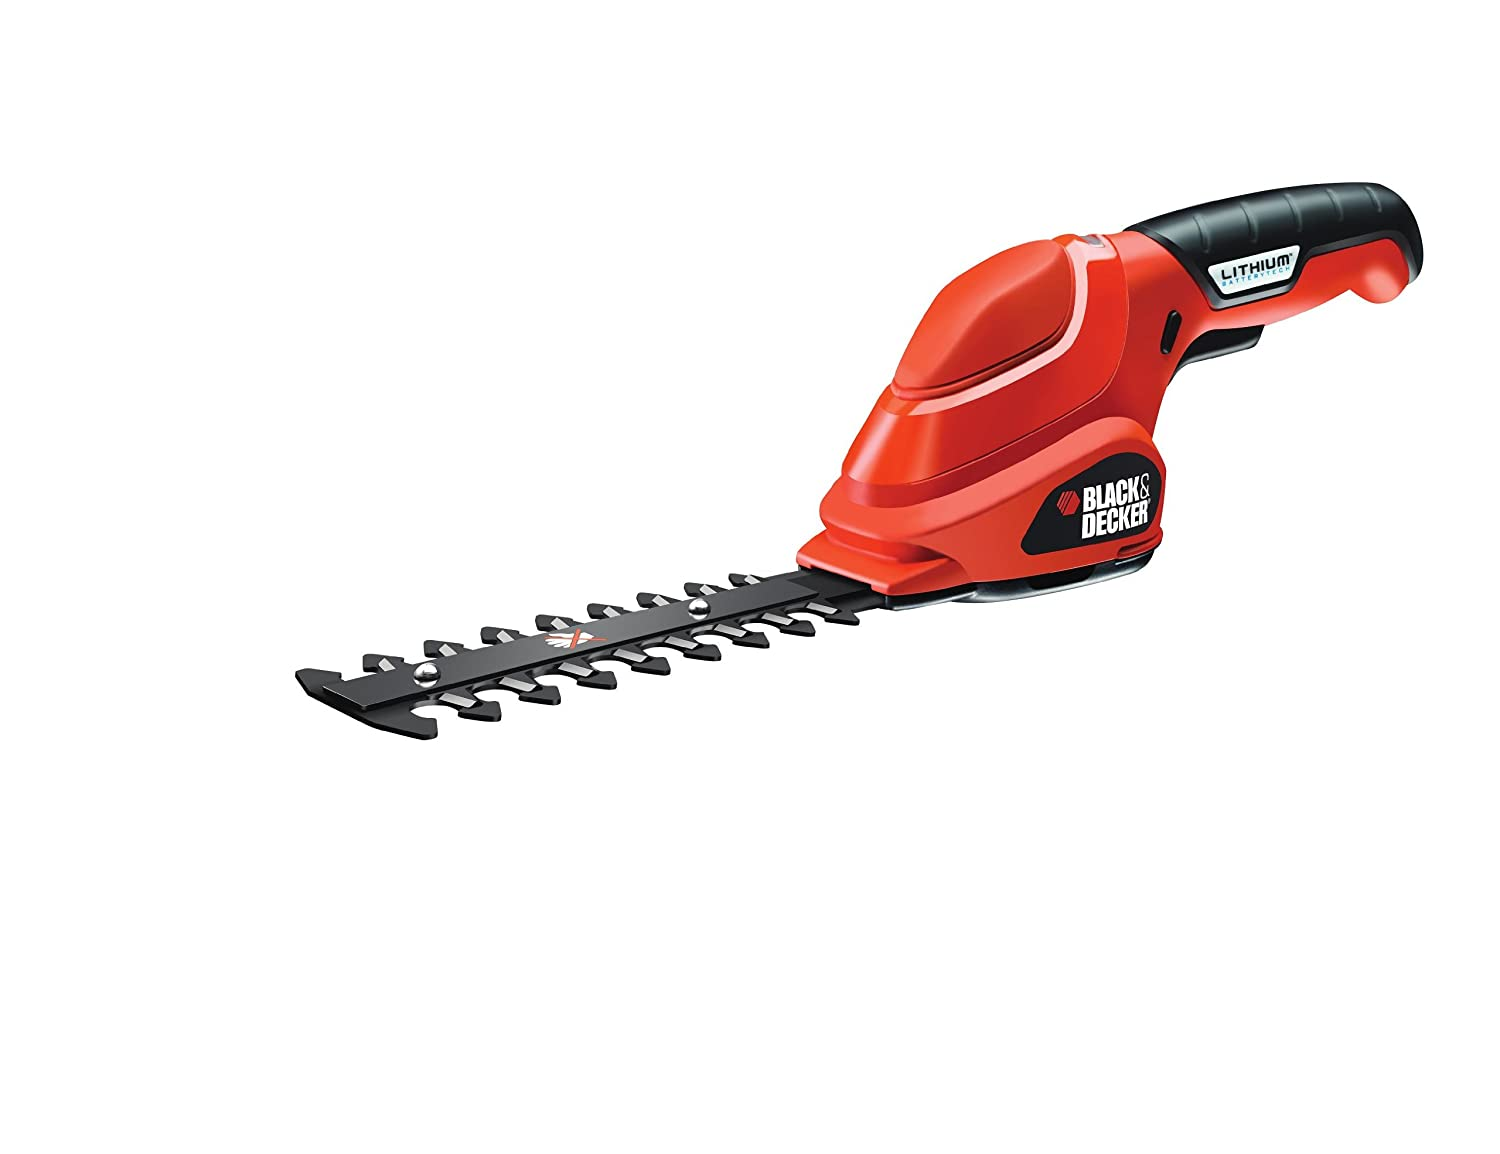 BLACK+DECKER 3.6 V Lithium Ion Shrubber Black & Decker GSL300-GB